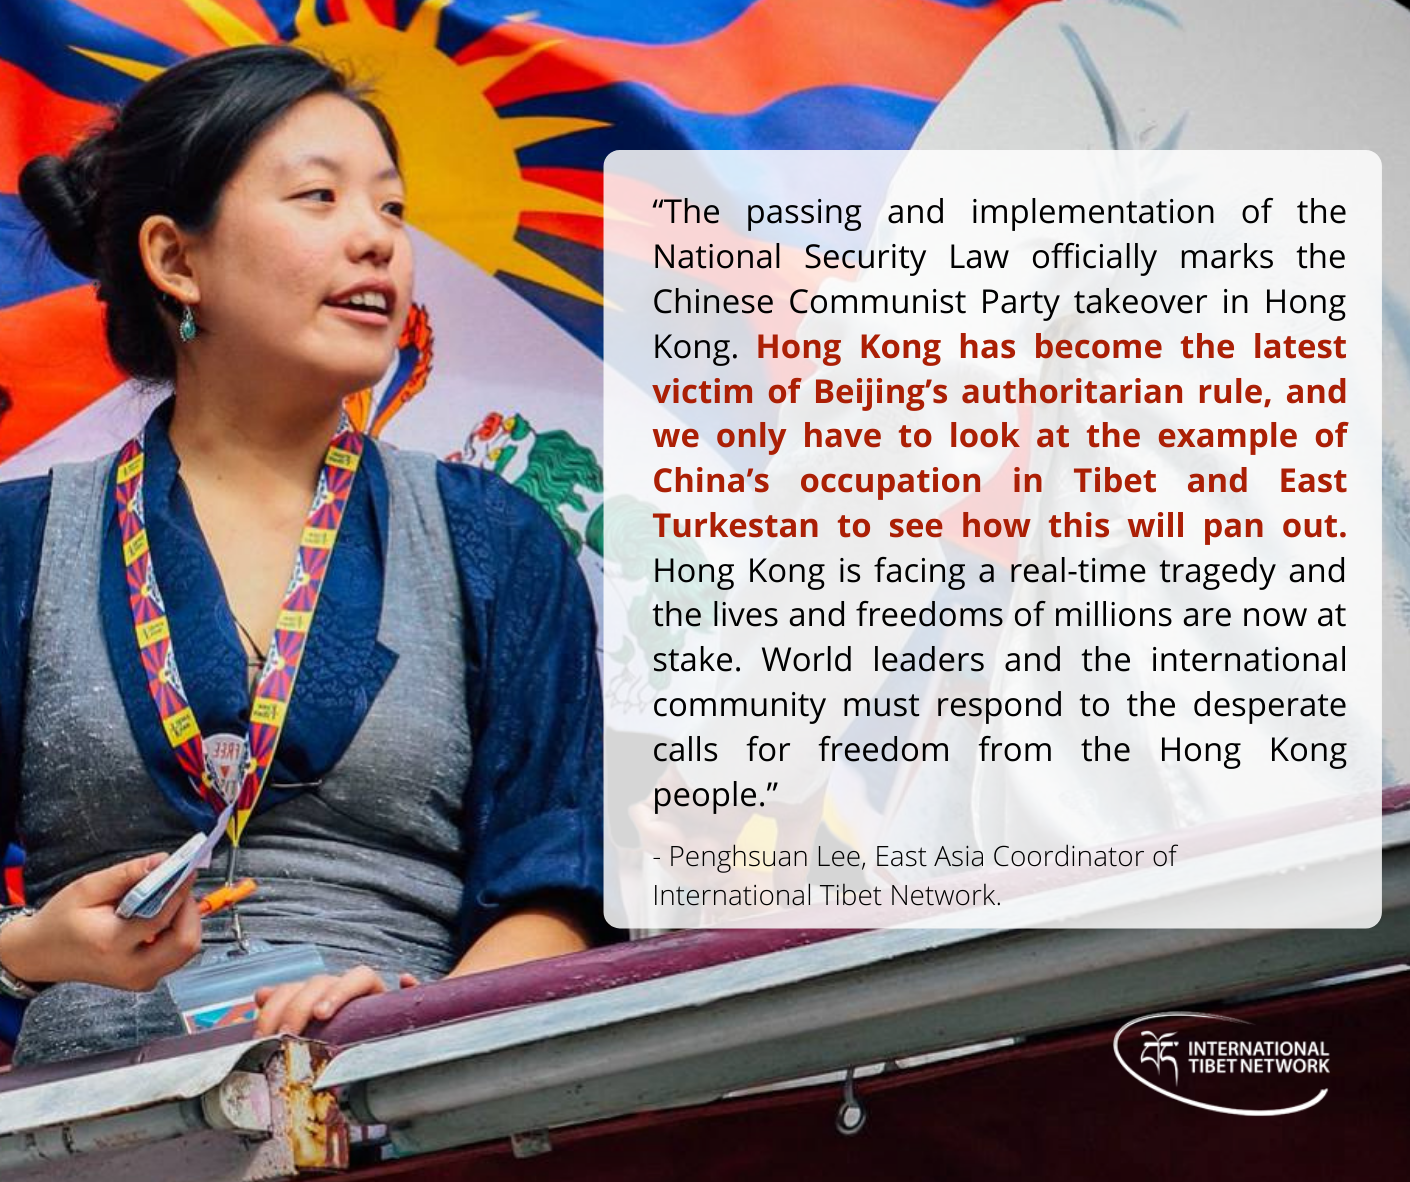 """""""Hong Kong has become the latest victim of Beijing's authoritarian rule, and we only have to look at the example of China's occupation in Tibet and East Turkestan to see how this will pan out. Hong Kong is facing a real-time tragedy and the lives and freedoms of millions are now at stake. World leaders and the international community must respond to the desperate calls for freedom from the Hong Kong people."""""""